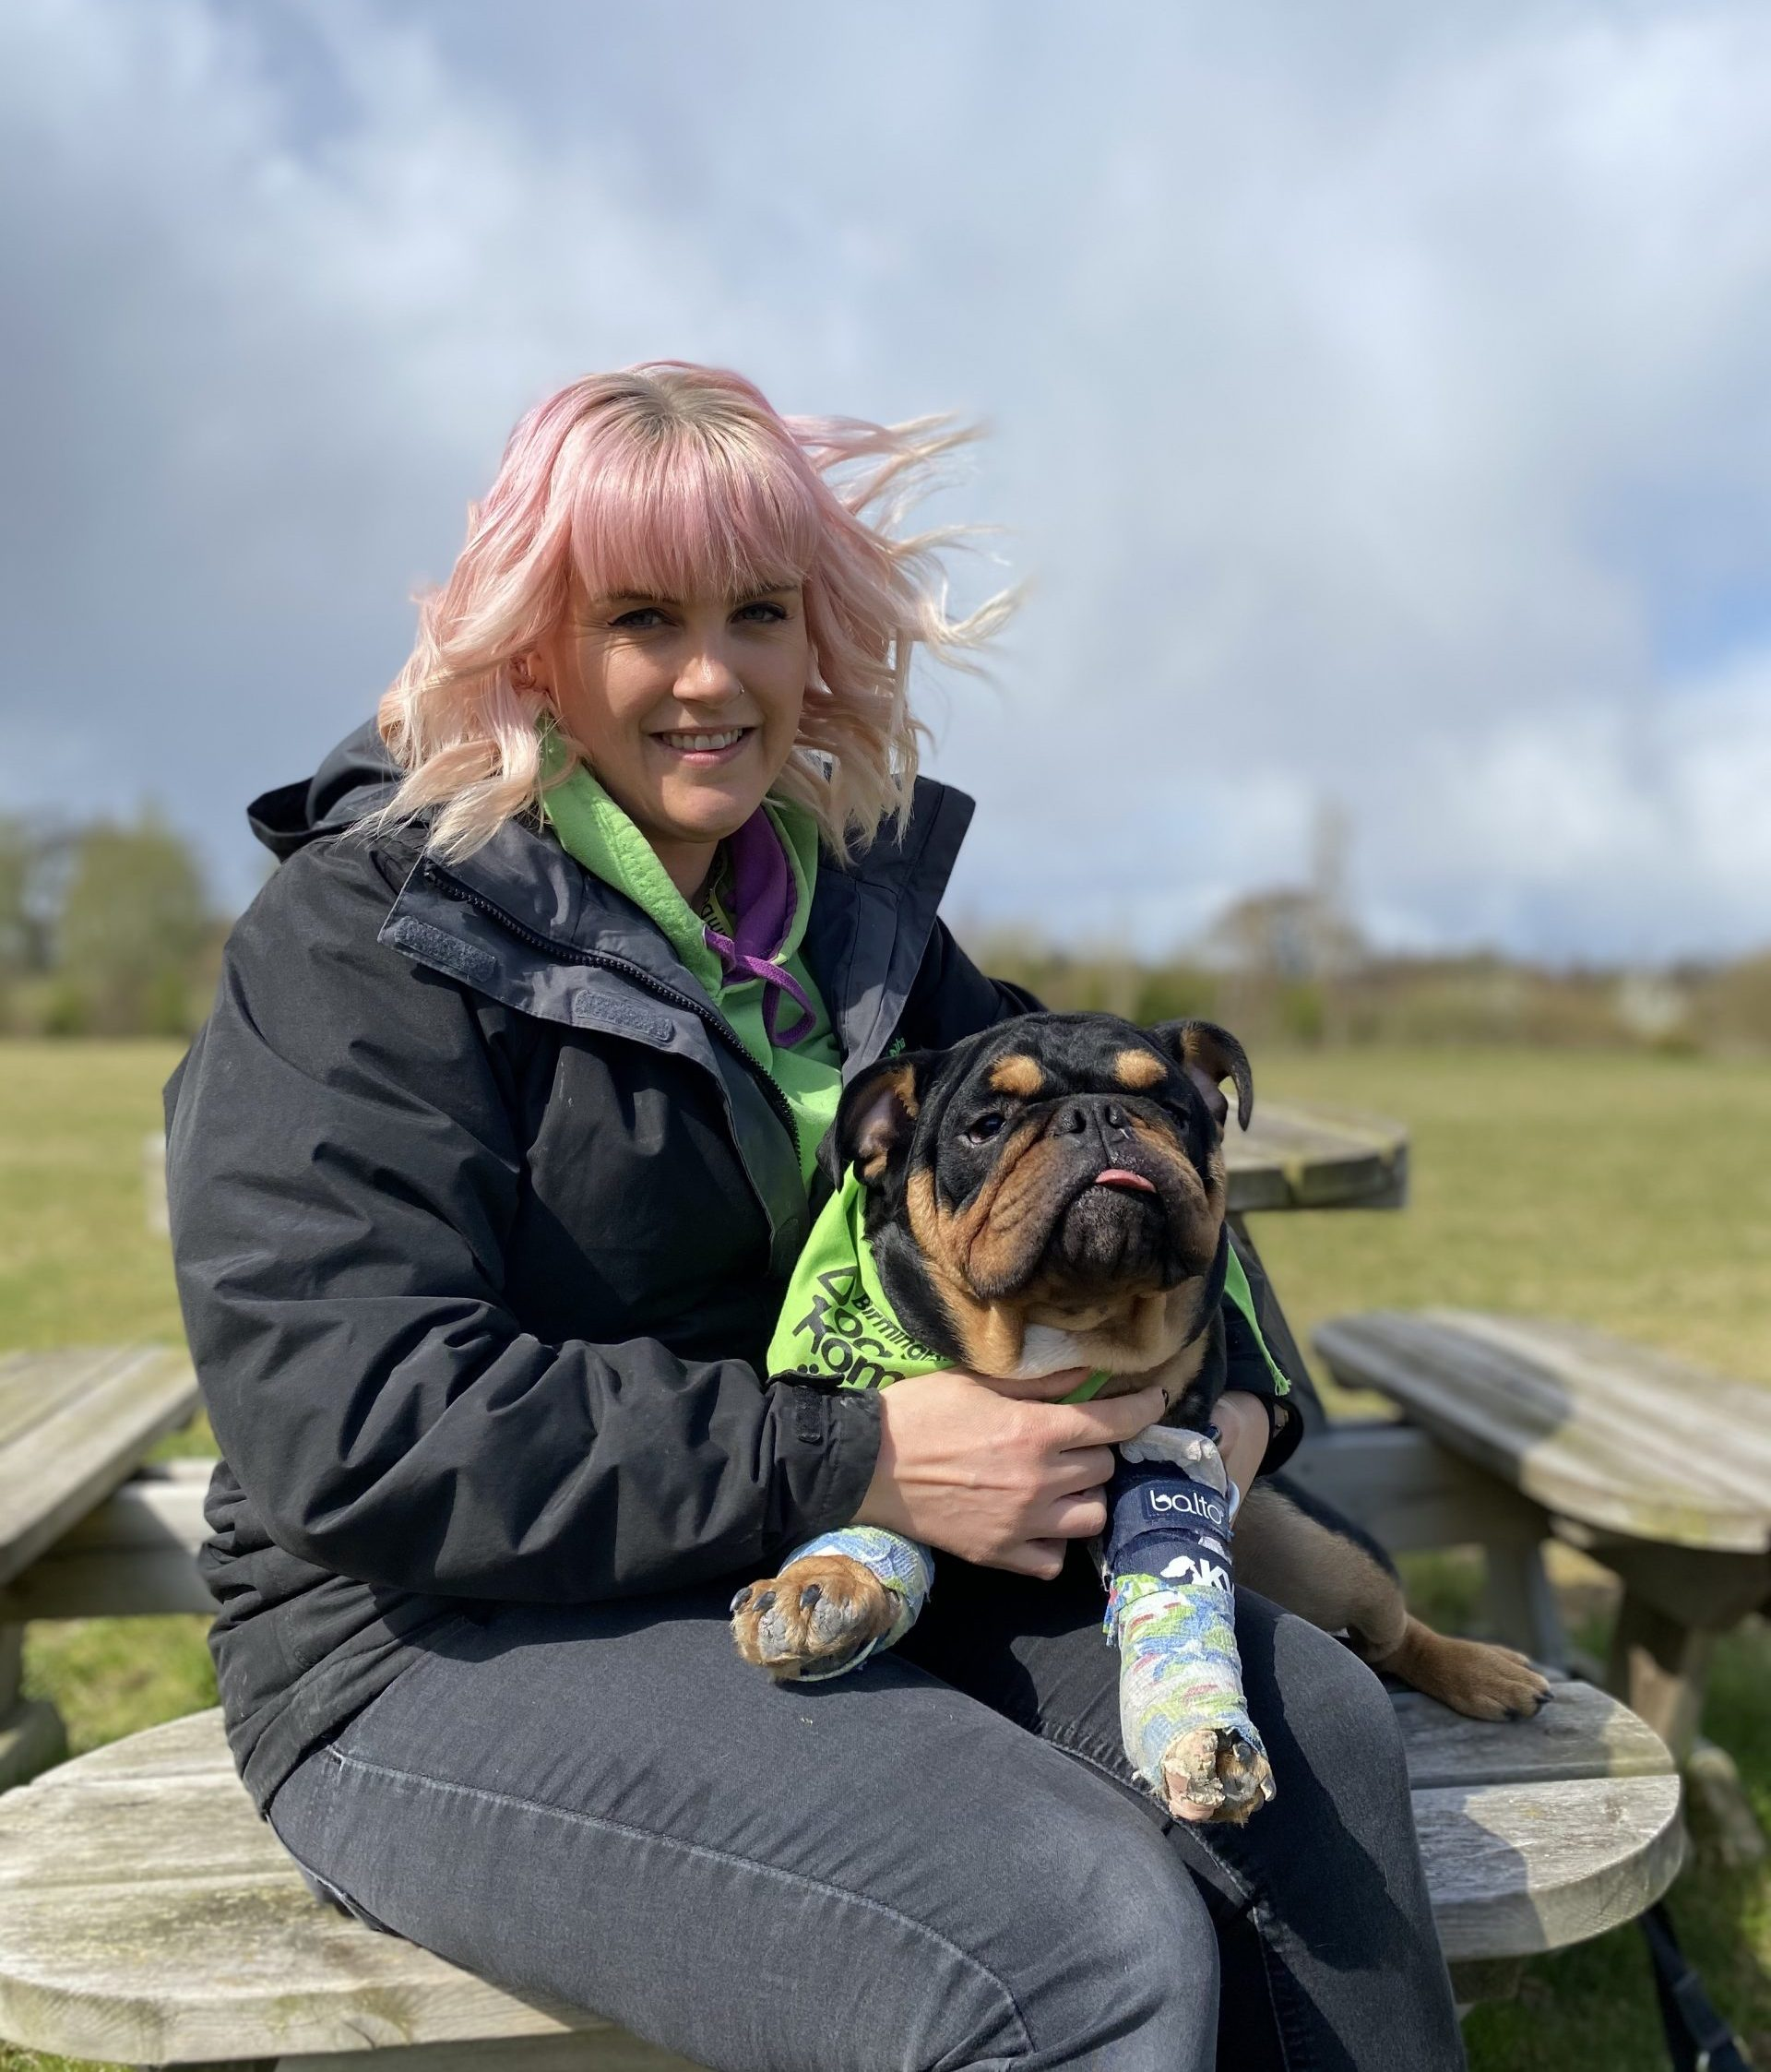 How we're helping 'pawly' pooches through our partnership with Birmingham Dogs Home